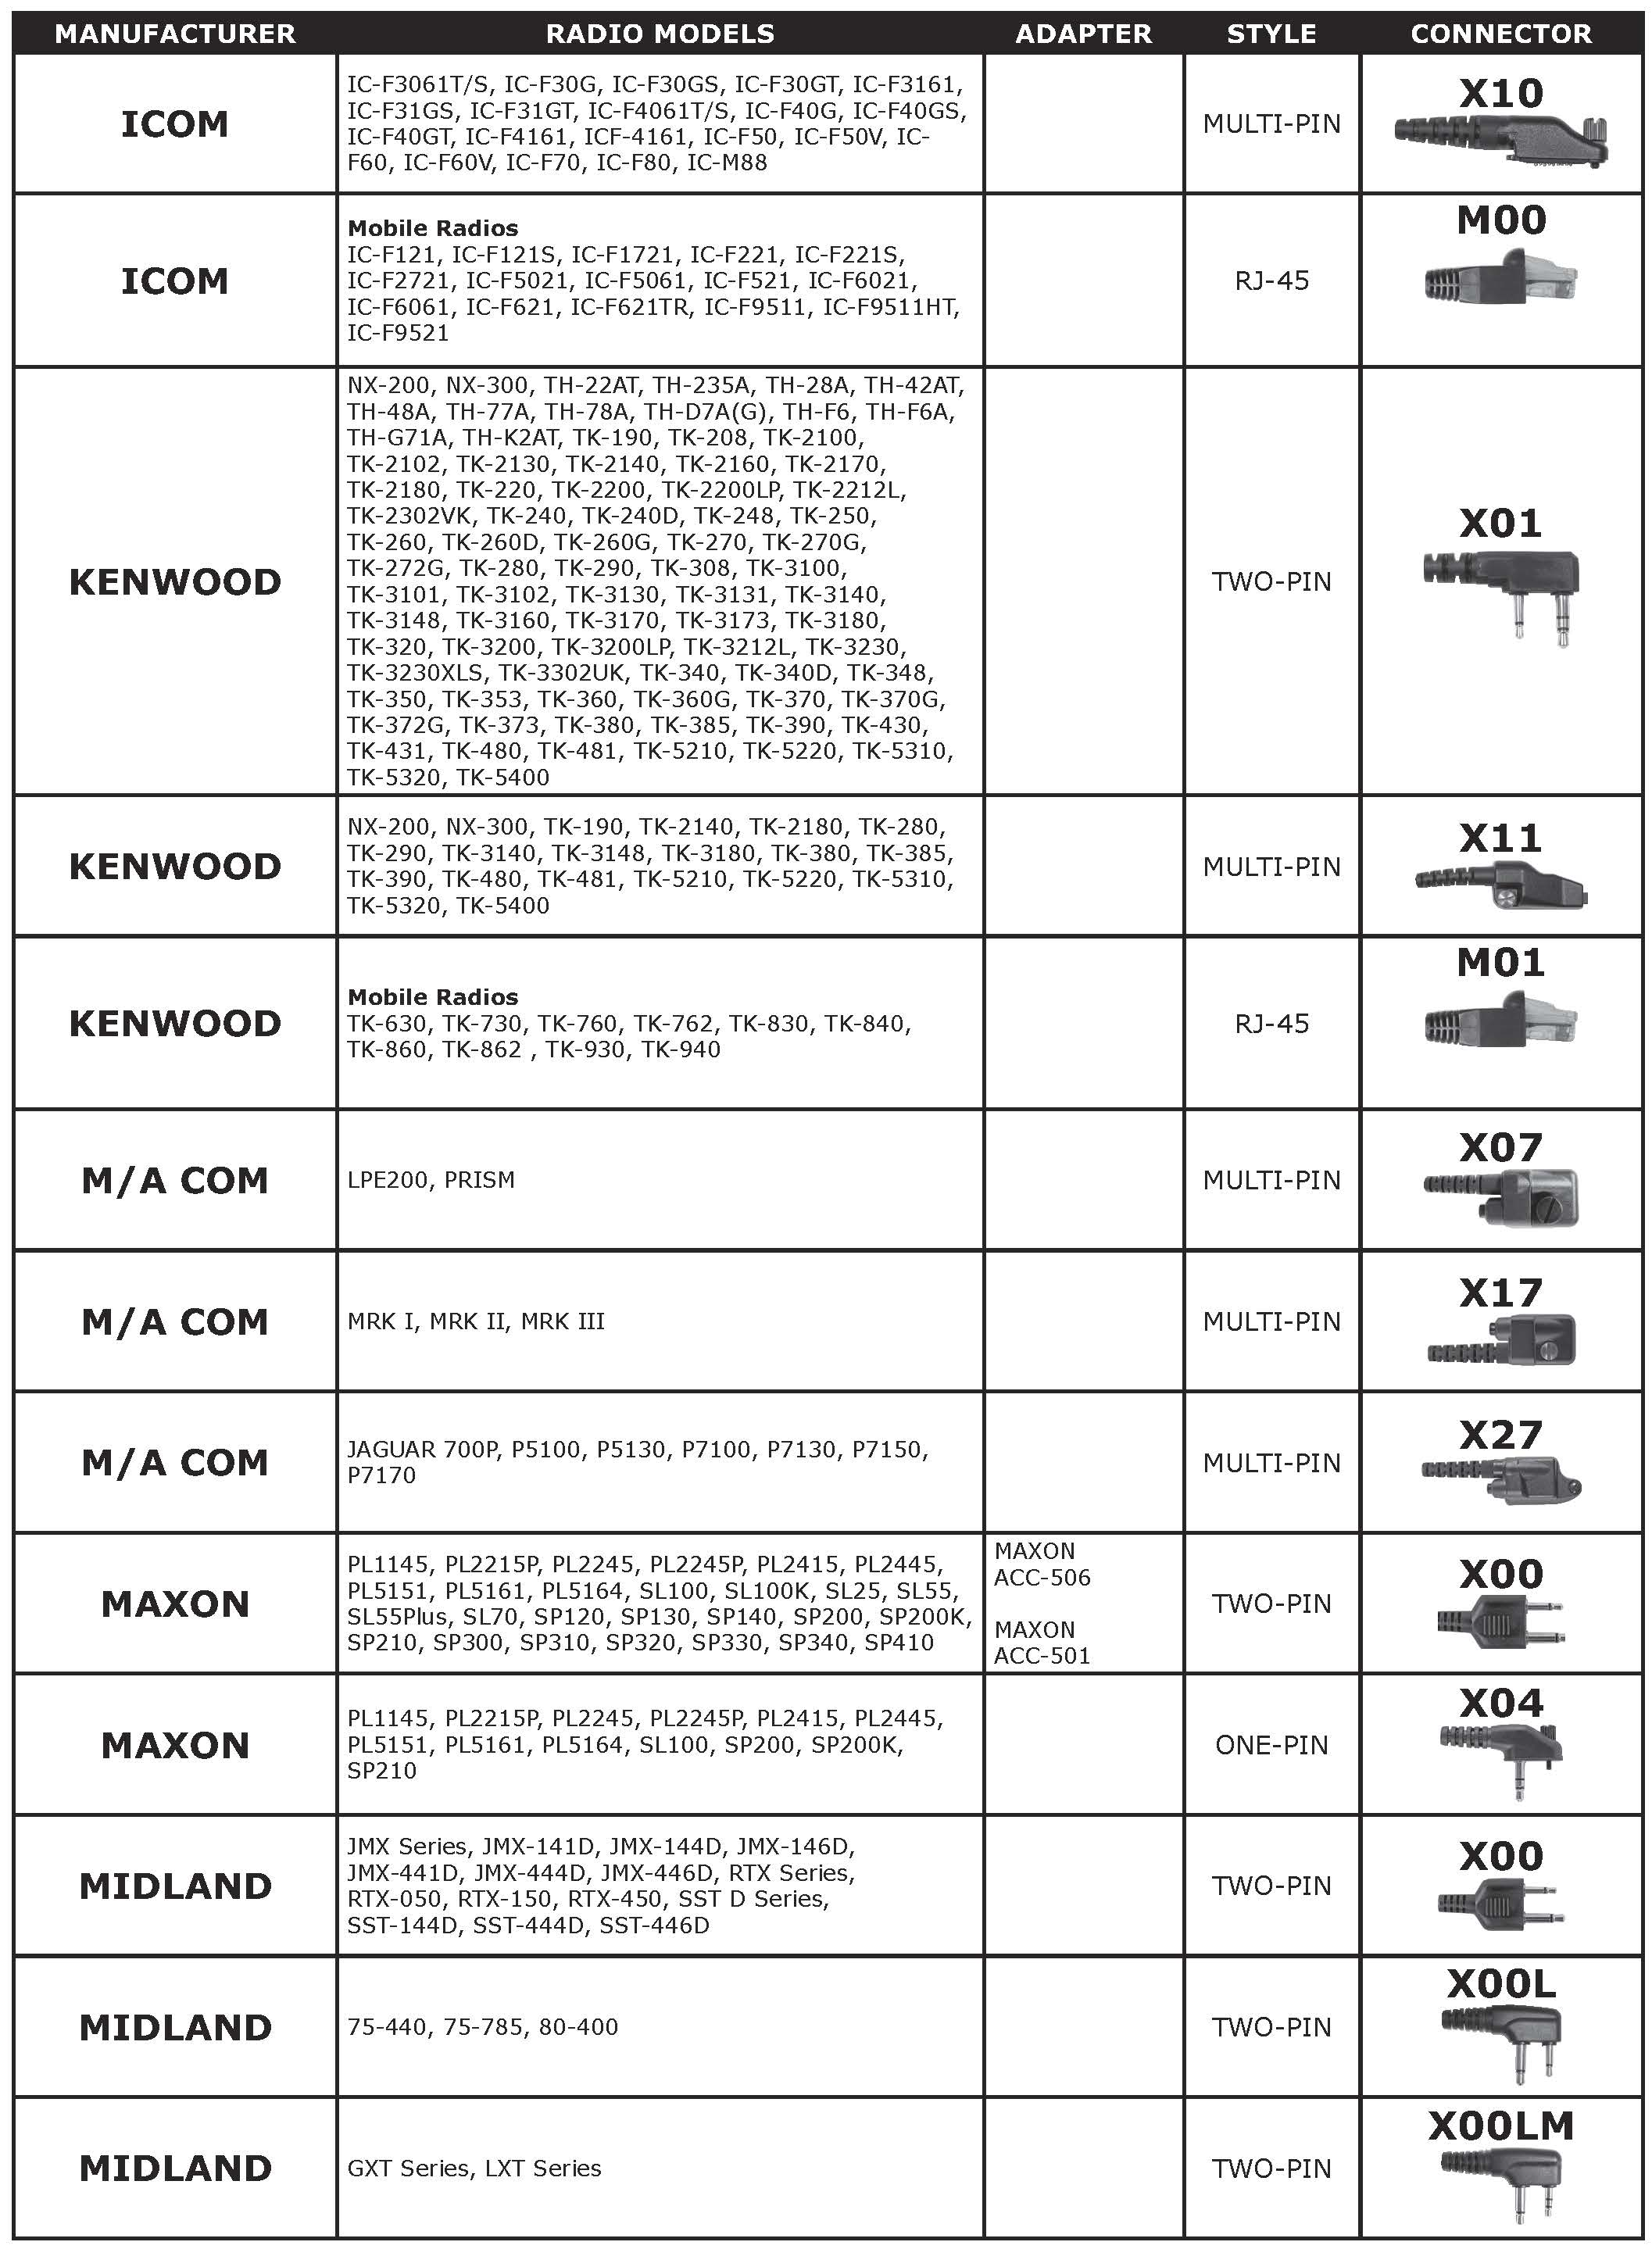 pryme-connecter-chart-page-2.jpg